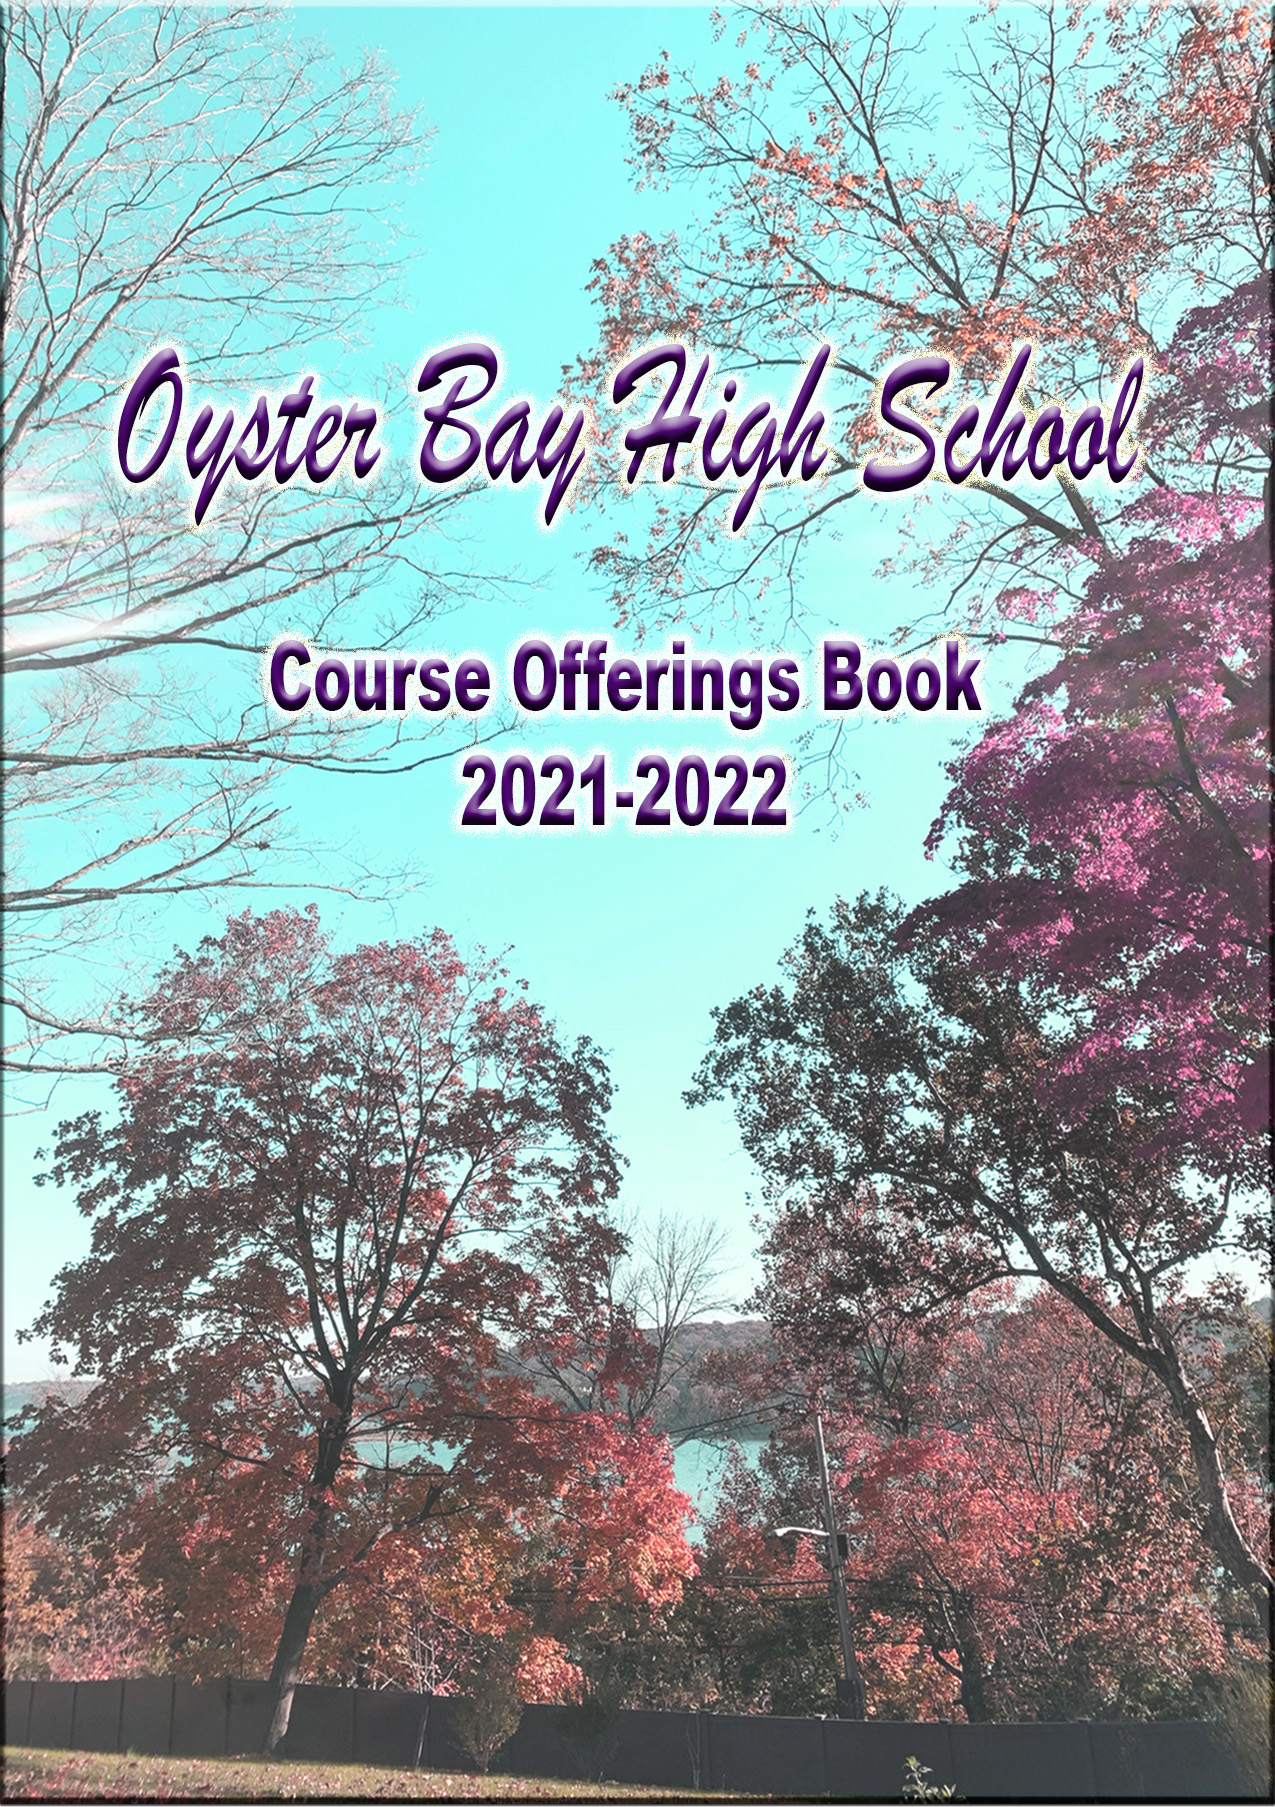 2021-22 Course Offering Booklet